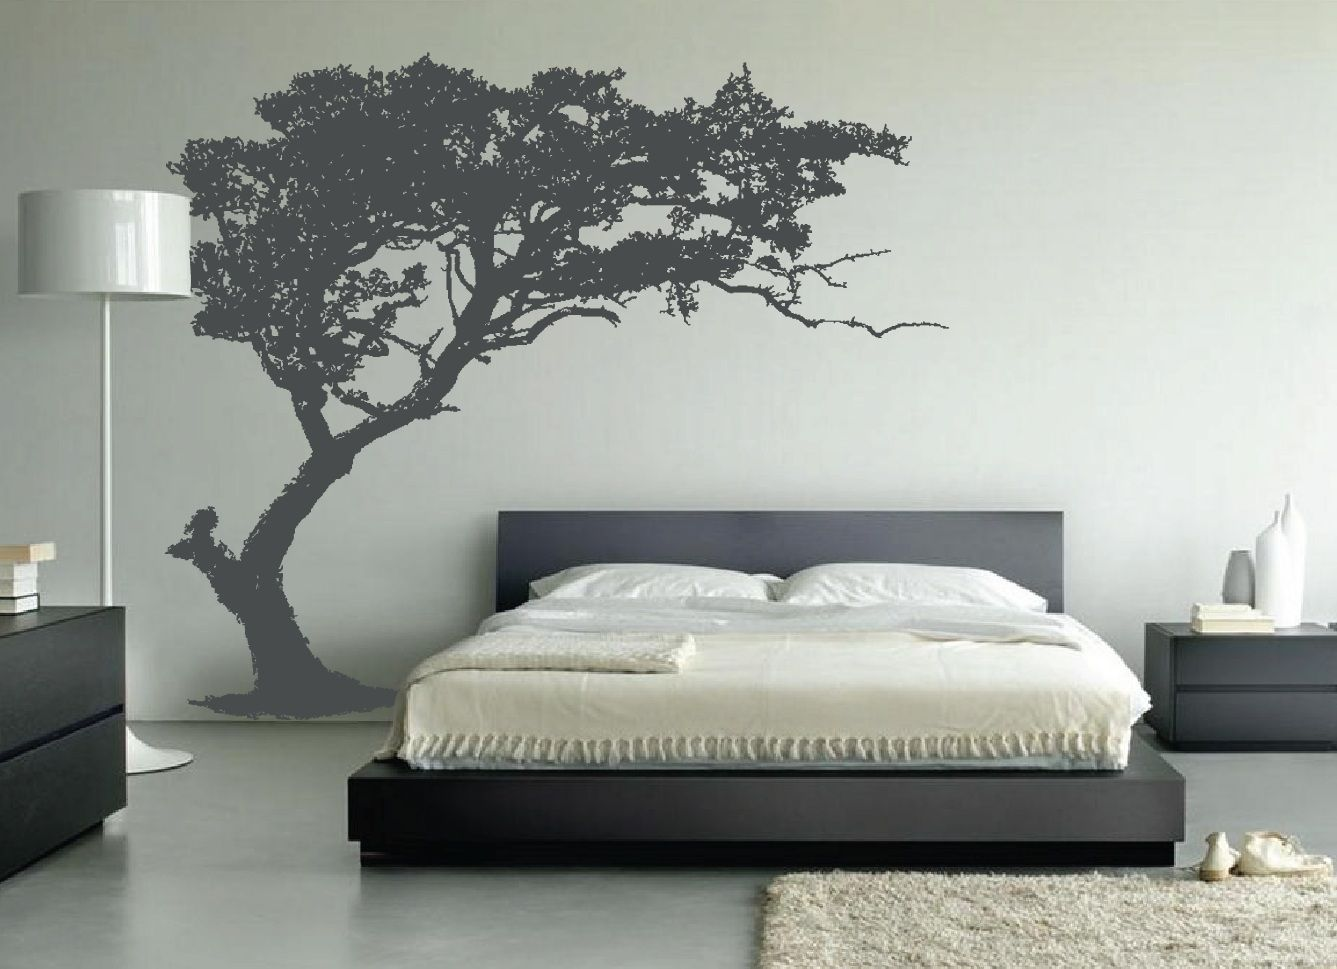 Painting walls ideas wall decals - Wall Decals 25 Fantastic Minimalist Bedroom Ideas